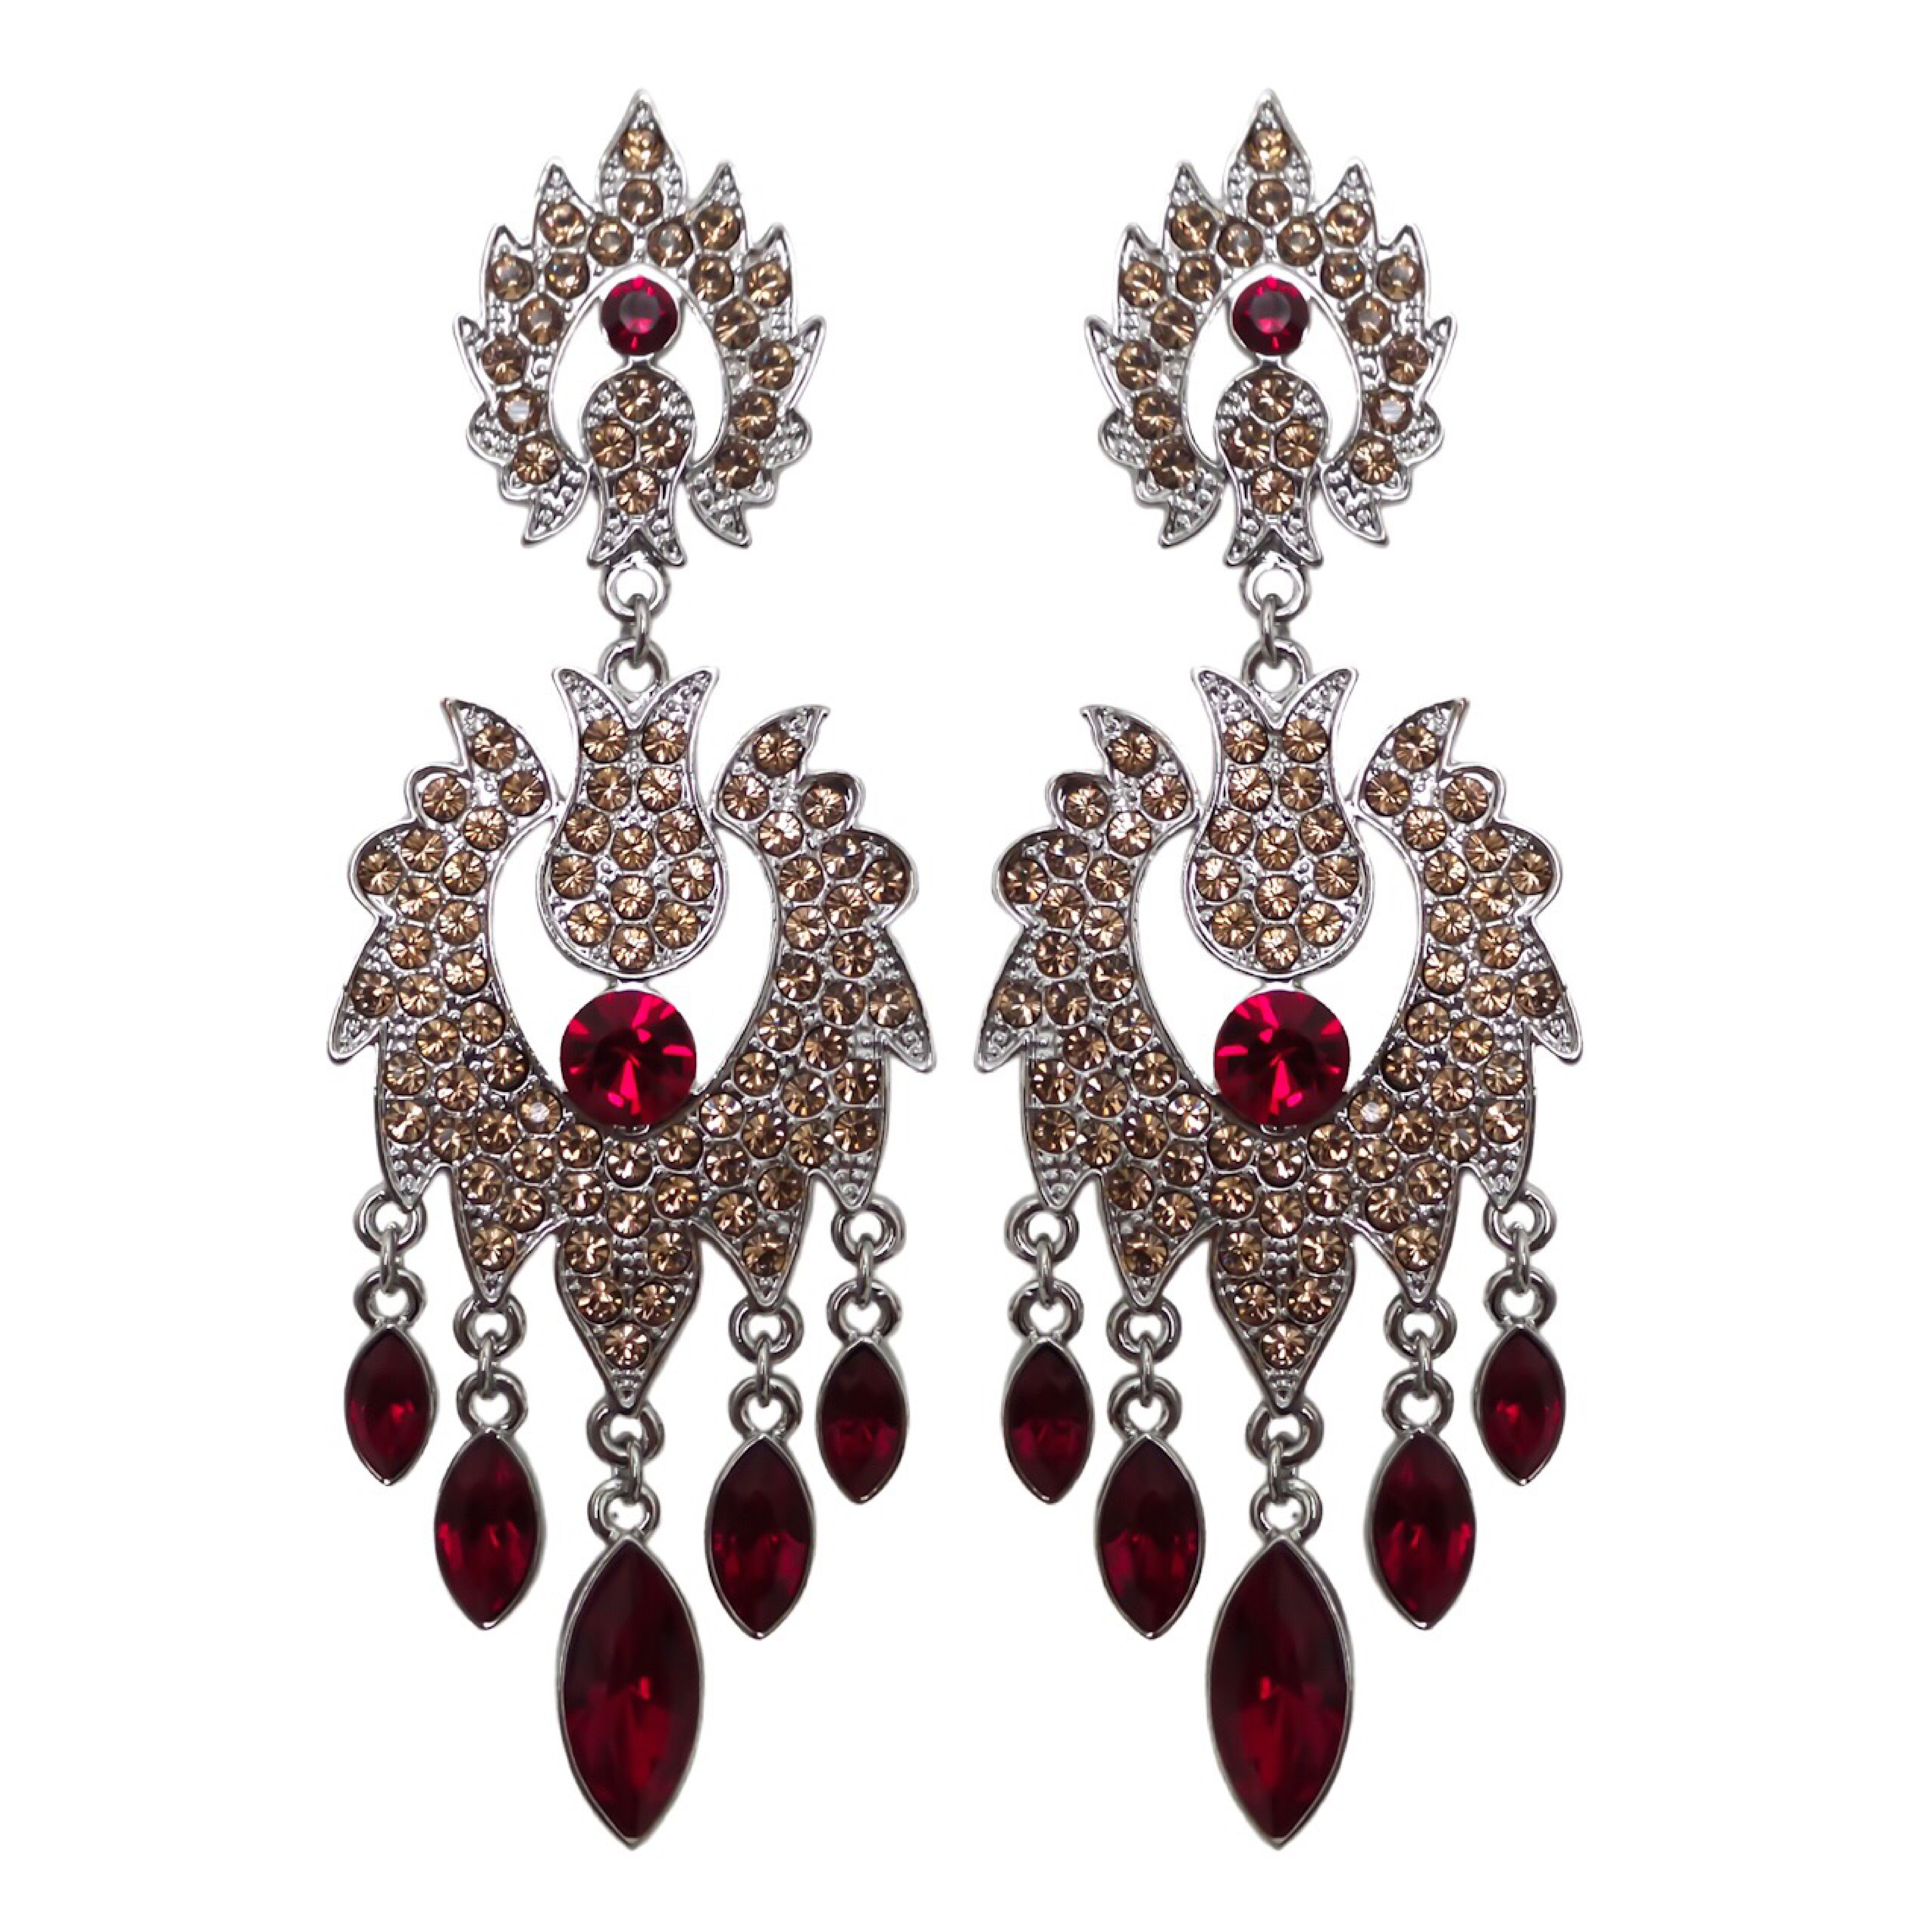 Earrings - ROSA/LCTSR